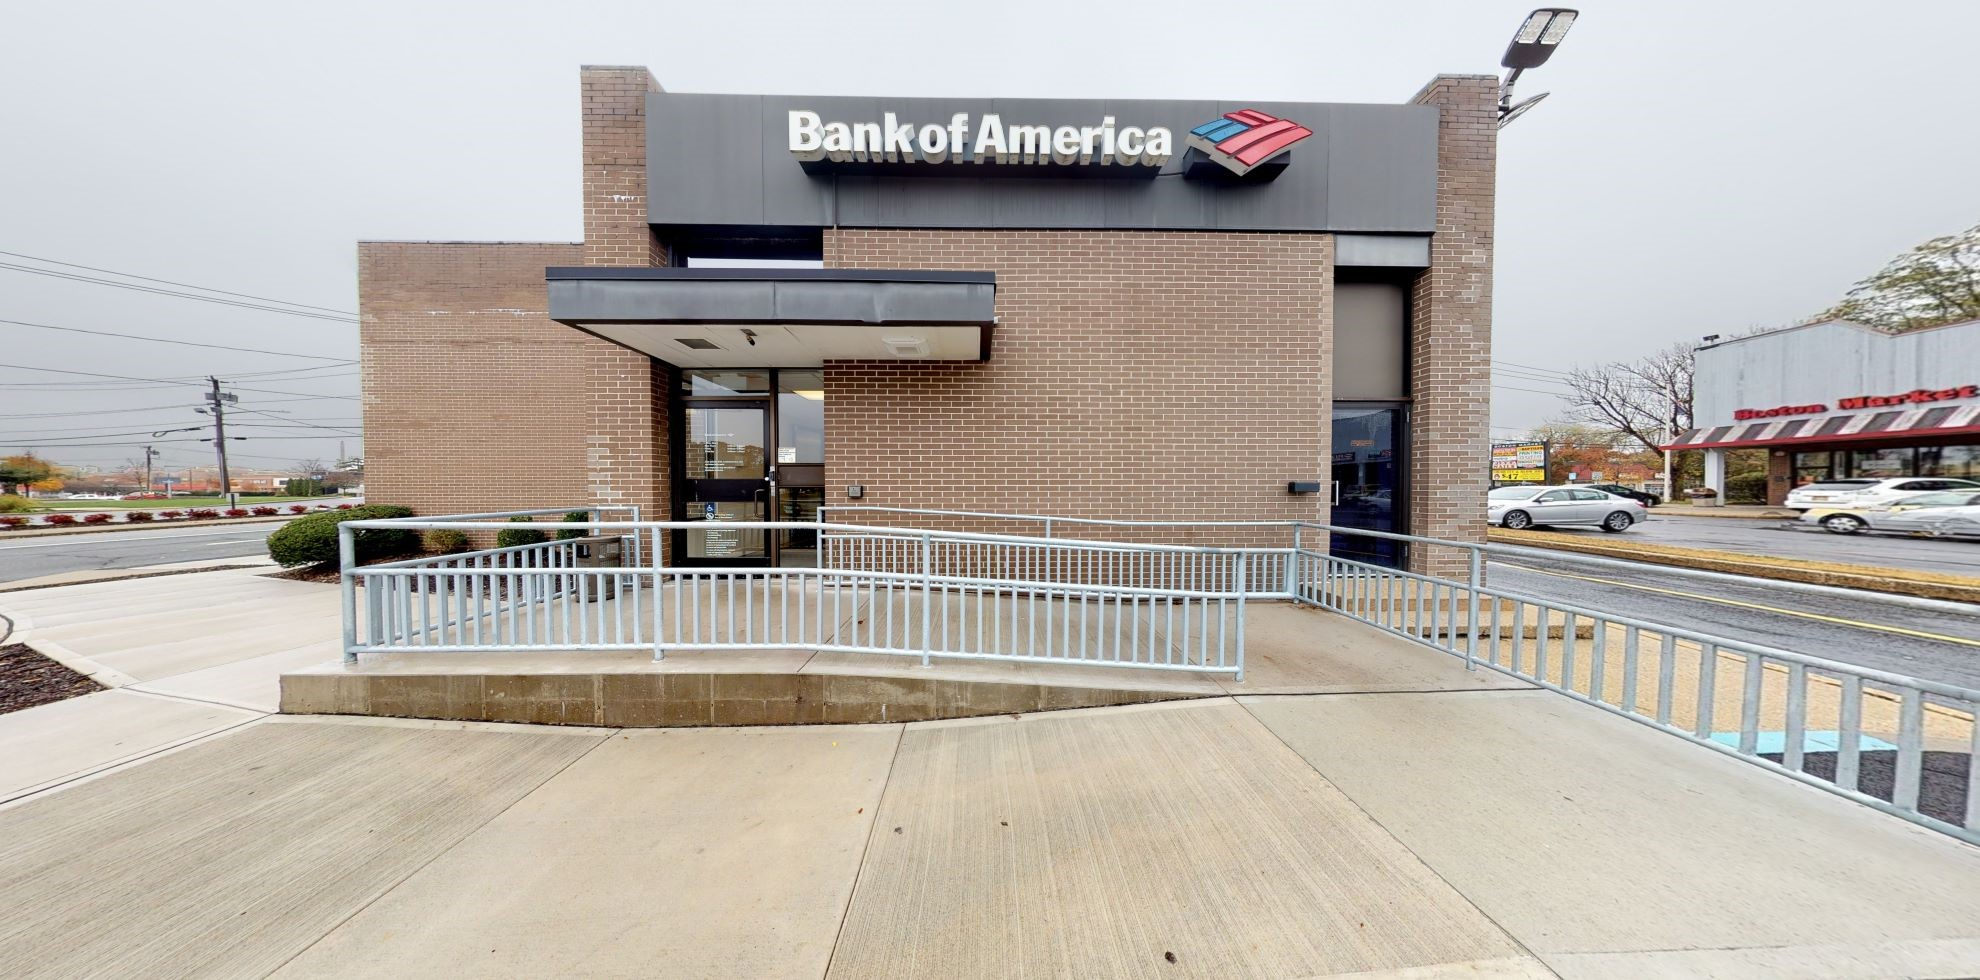 Bank of America financial center with drive-thru ATM | 994 Middle Country Rd, Selden, NY 11784